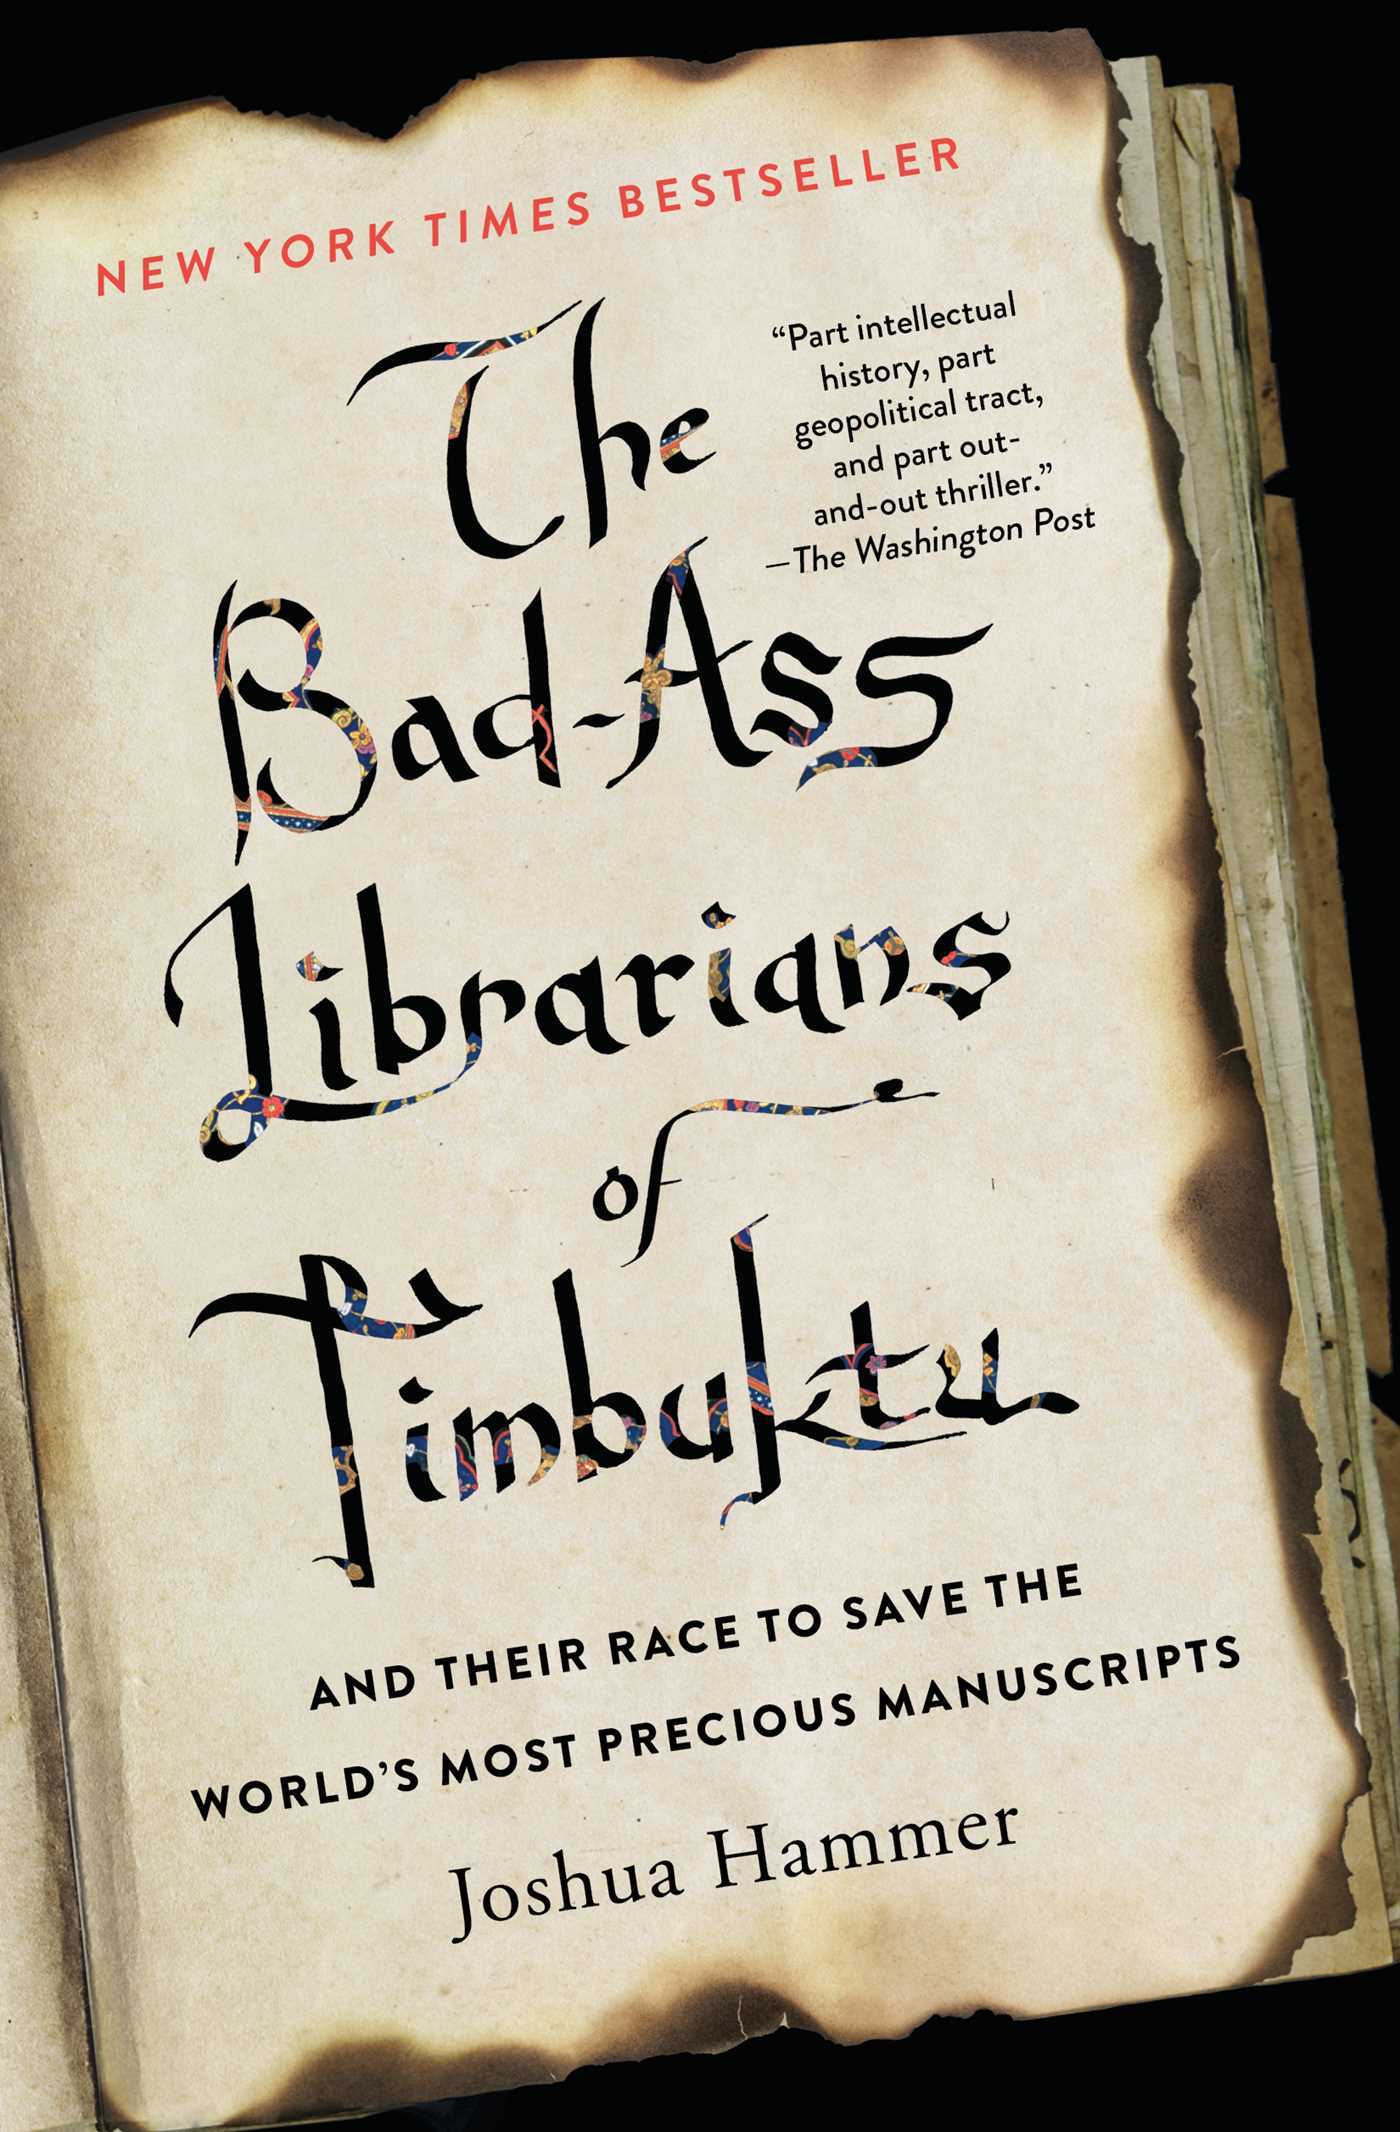 The bad ass librarians of timbuktu 9781476777436 hr